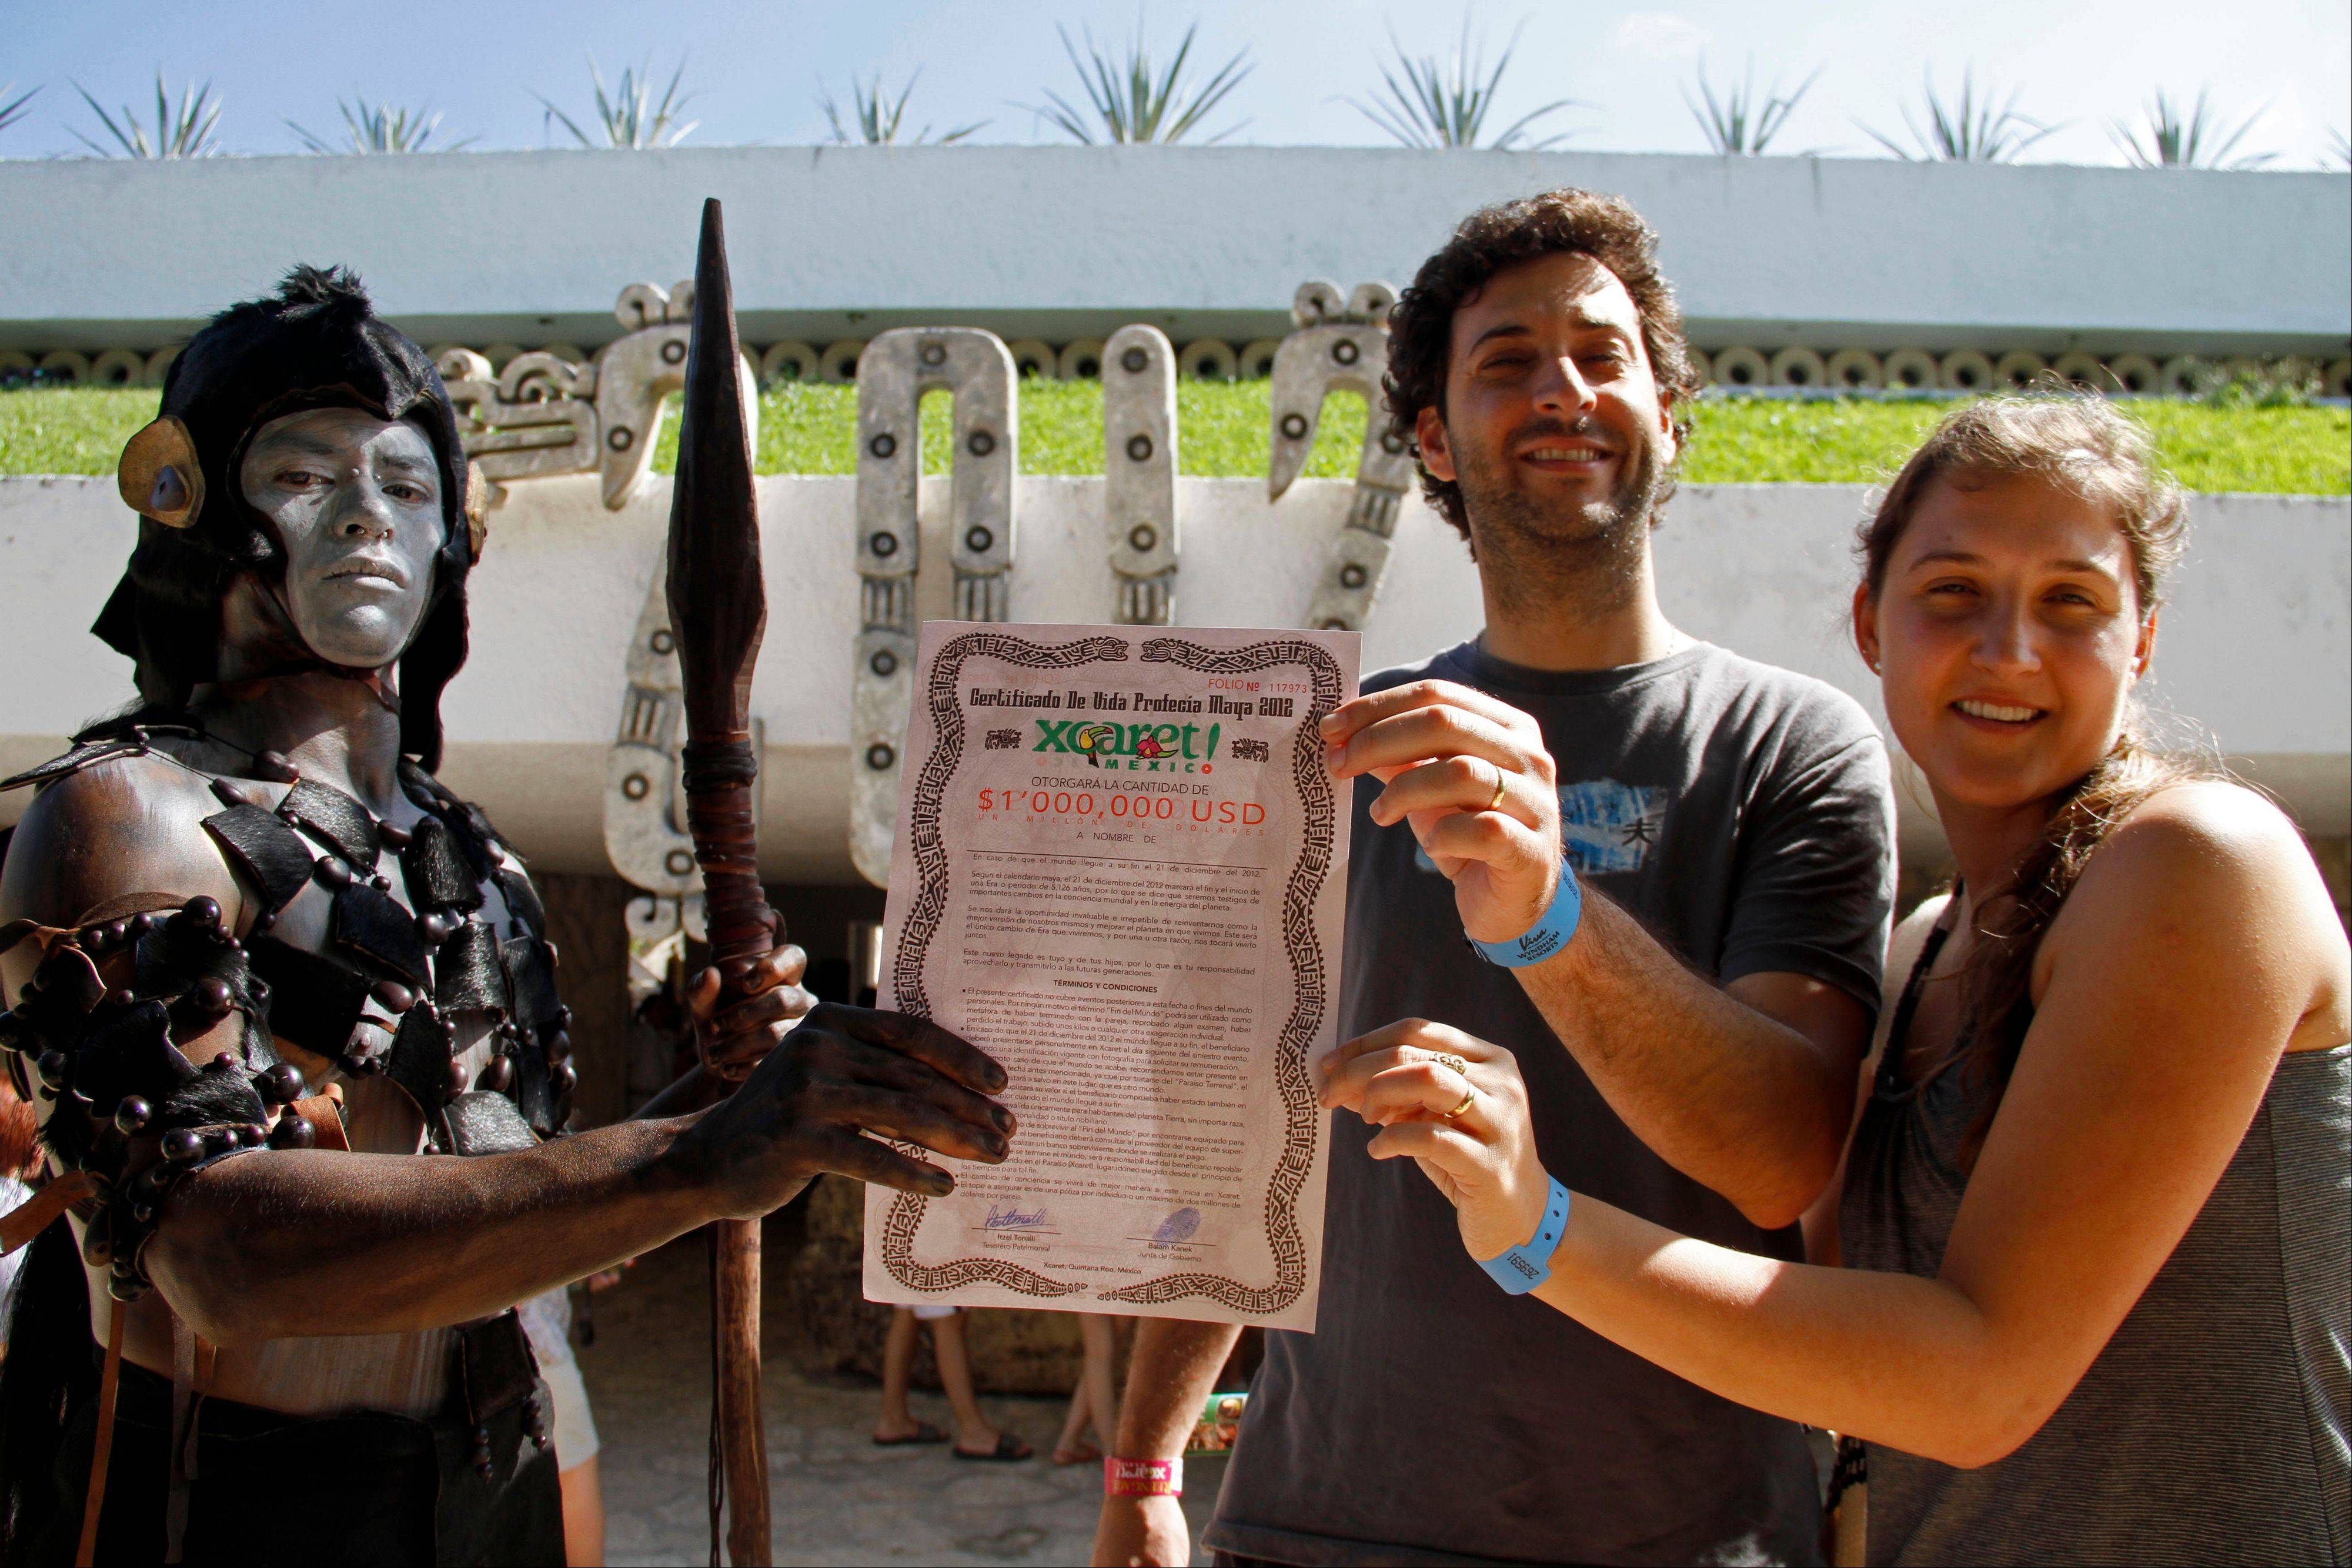 A man dressed as a Mayan warrior delivers a life certificate for one million dollars, to be paid in case the world comes to an end to an unidentified couple, as they pose for a photo at the Xcaret theme park Saturday in Playa del Carmen, Mexico.